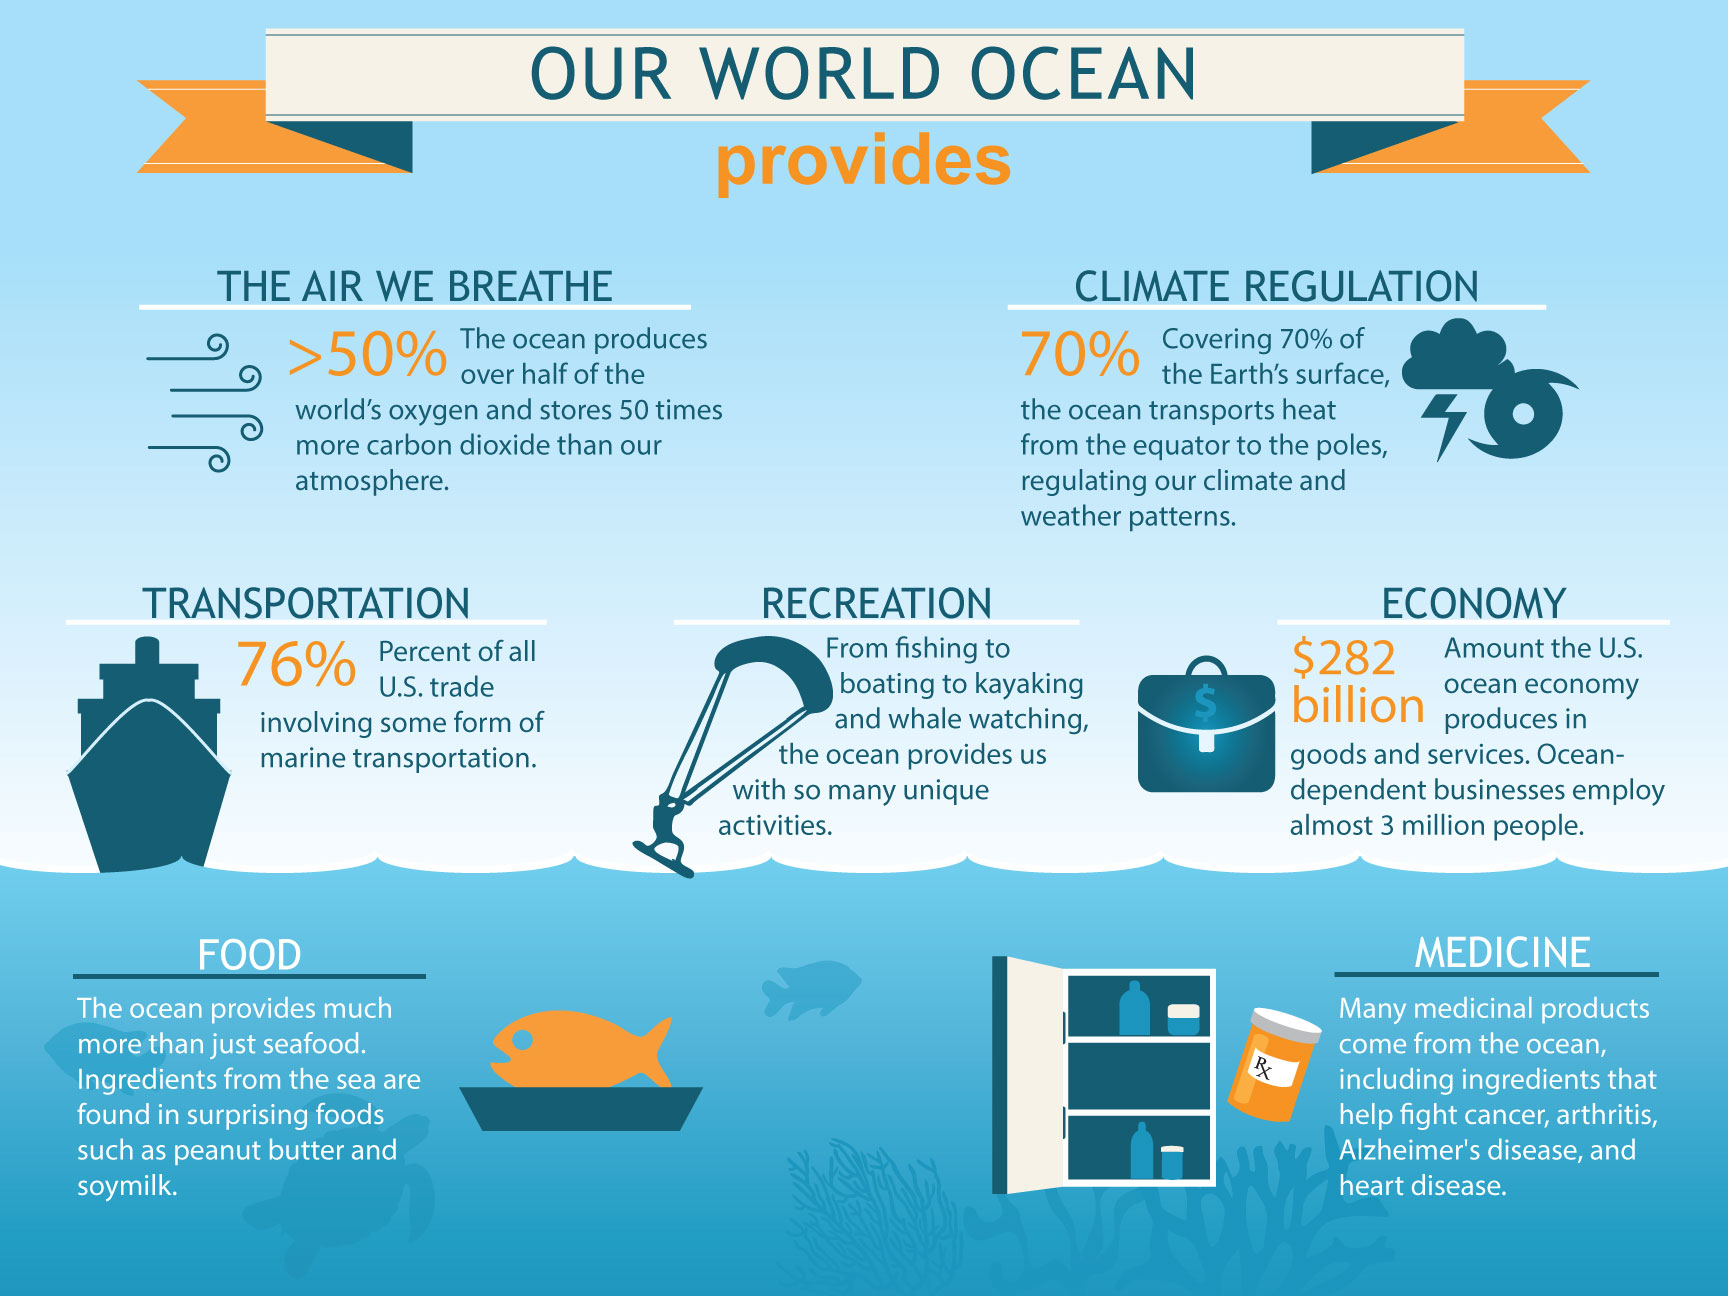 infographic showing benefits of the ocean; text content of graphic can be found in the image caption